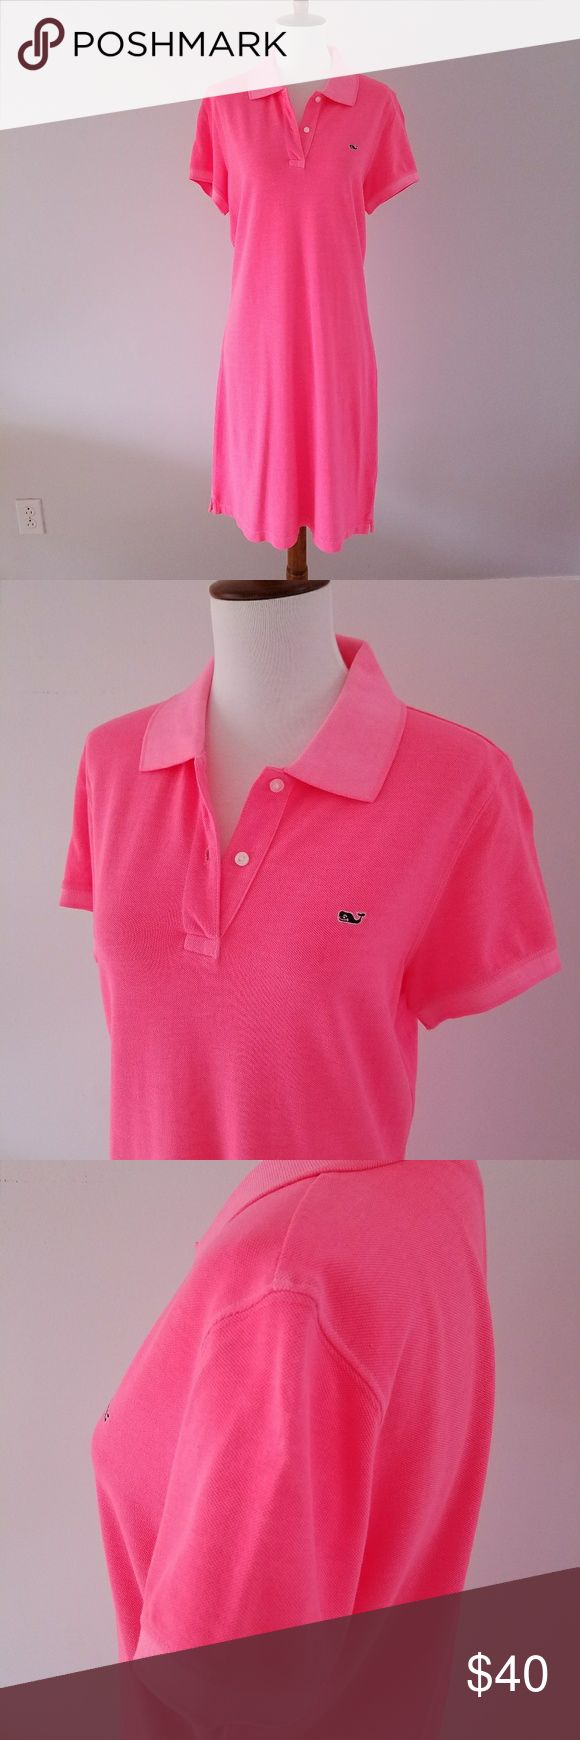 Vineyard Vines pink polo dress size medium Vineyard Vines pink polo dress in a size medium.  Neon pink coral color.  Whale logo at left chest.  100% cotton.    Bust is 19.5 in, shoulder to hem is 39 in.    Style 2Q0366 Vineyard Vines Dresses